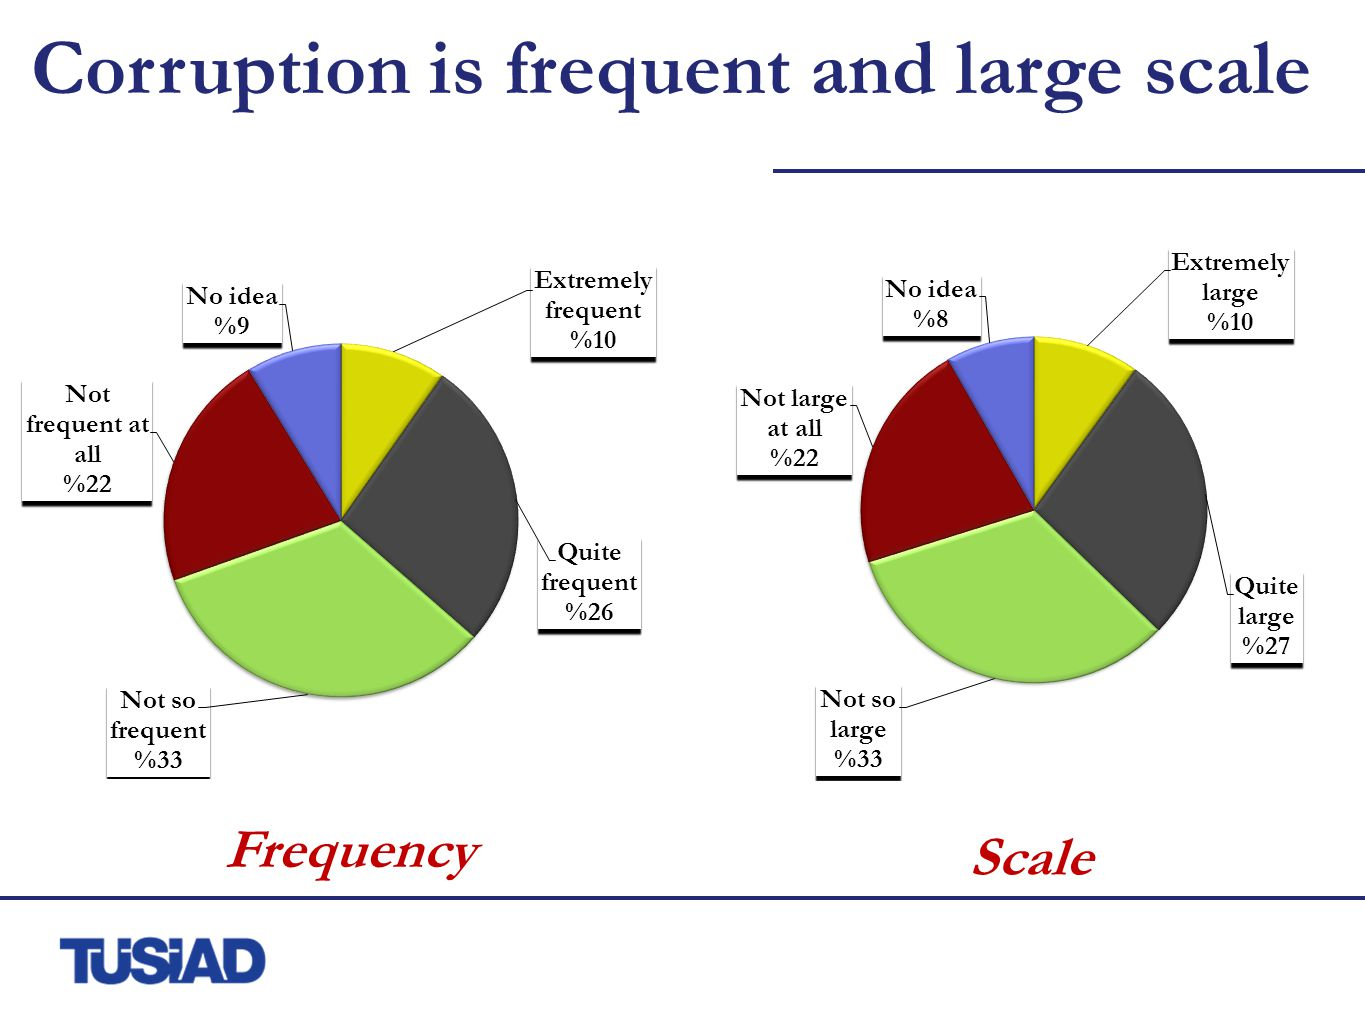 The perception of frequency and scale is lower in large companies